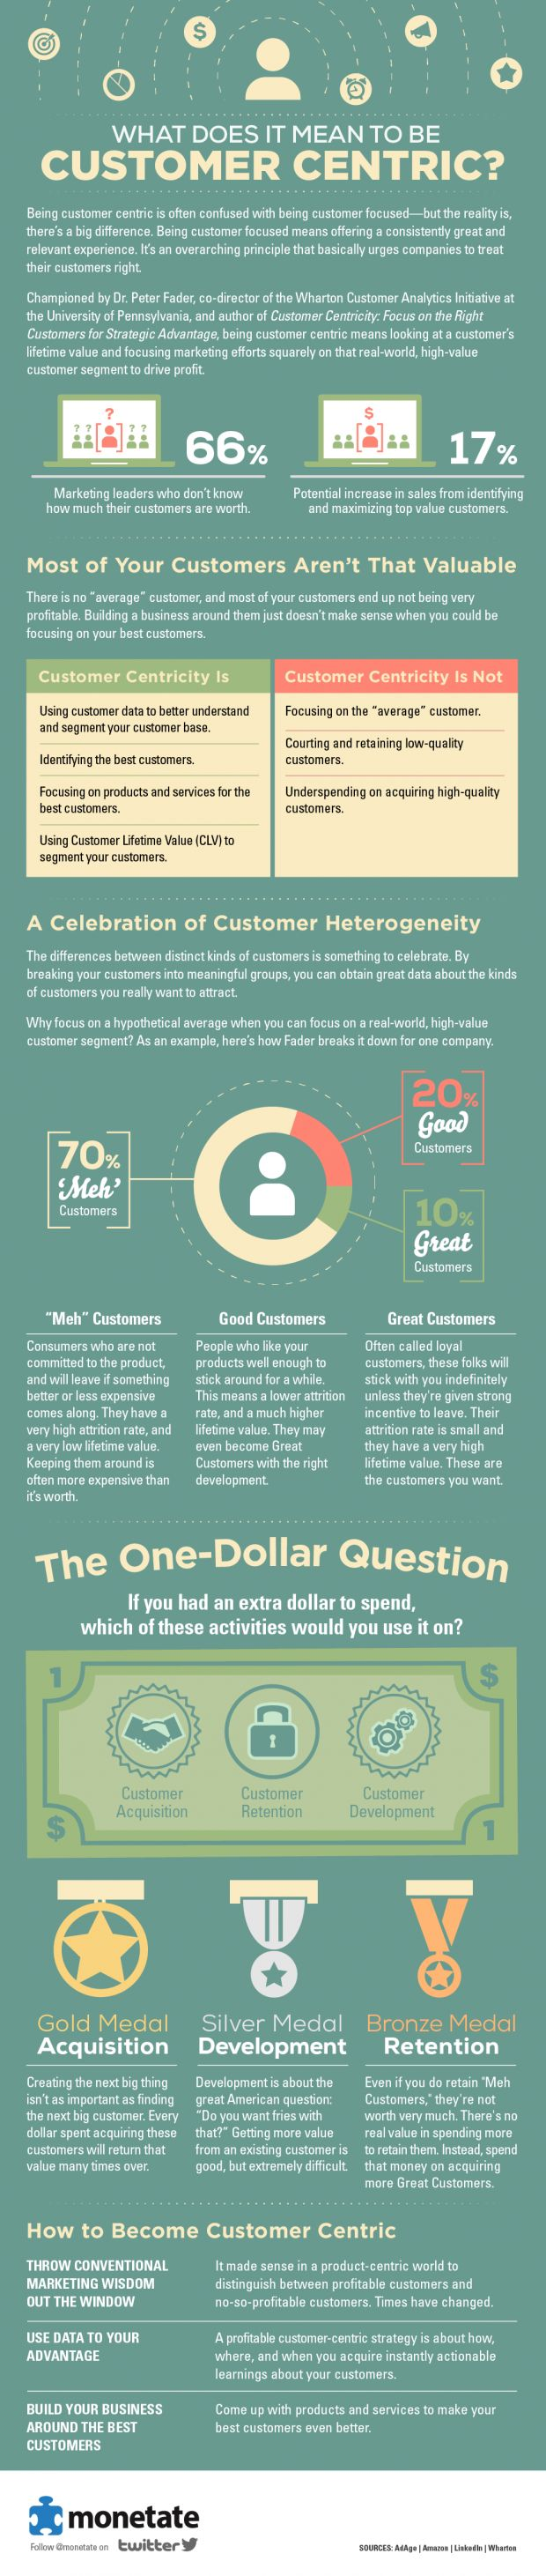 Most of Your Customers Aren't That Valuable INFOGRAPHIC: What Does It Mean to Be…